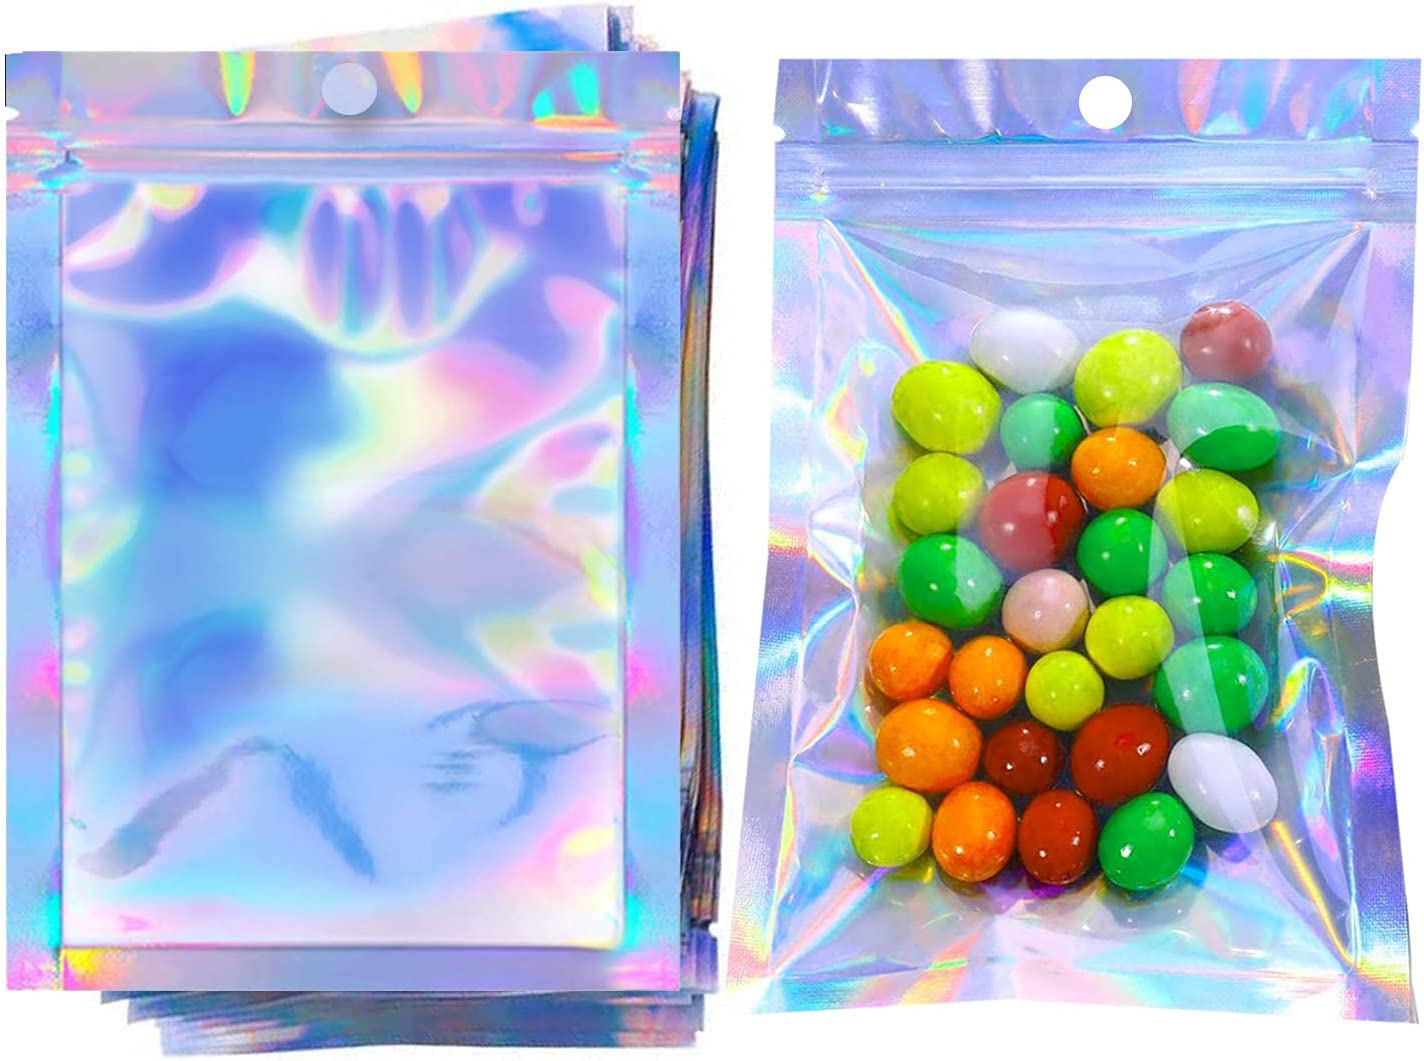 COQOFA 100Pcs 4x6 Inch Smell Proof mylar Bags Resealable Holographic Bags Flat Clear Foil zip lock Pouch Bags for Food Storage Lip Gloss Eyelash Jewelry Electronics Storage…